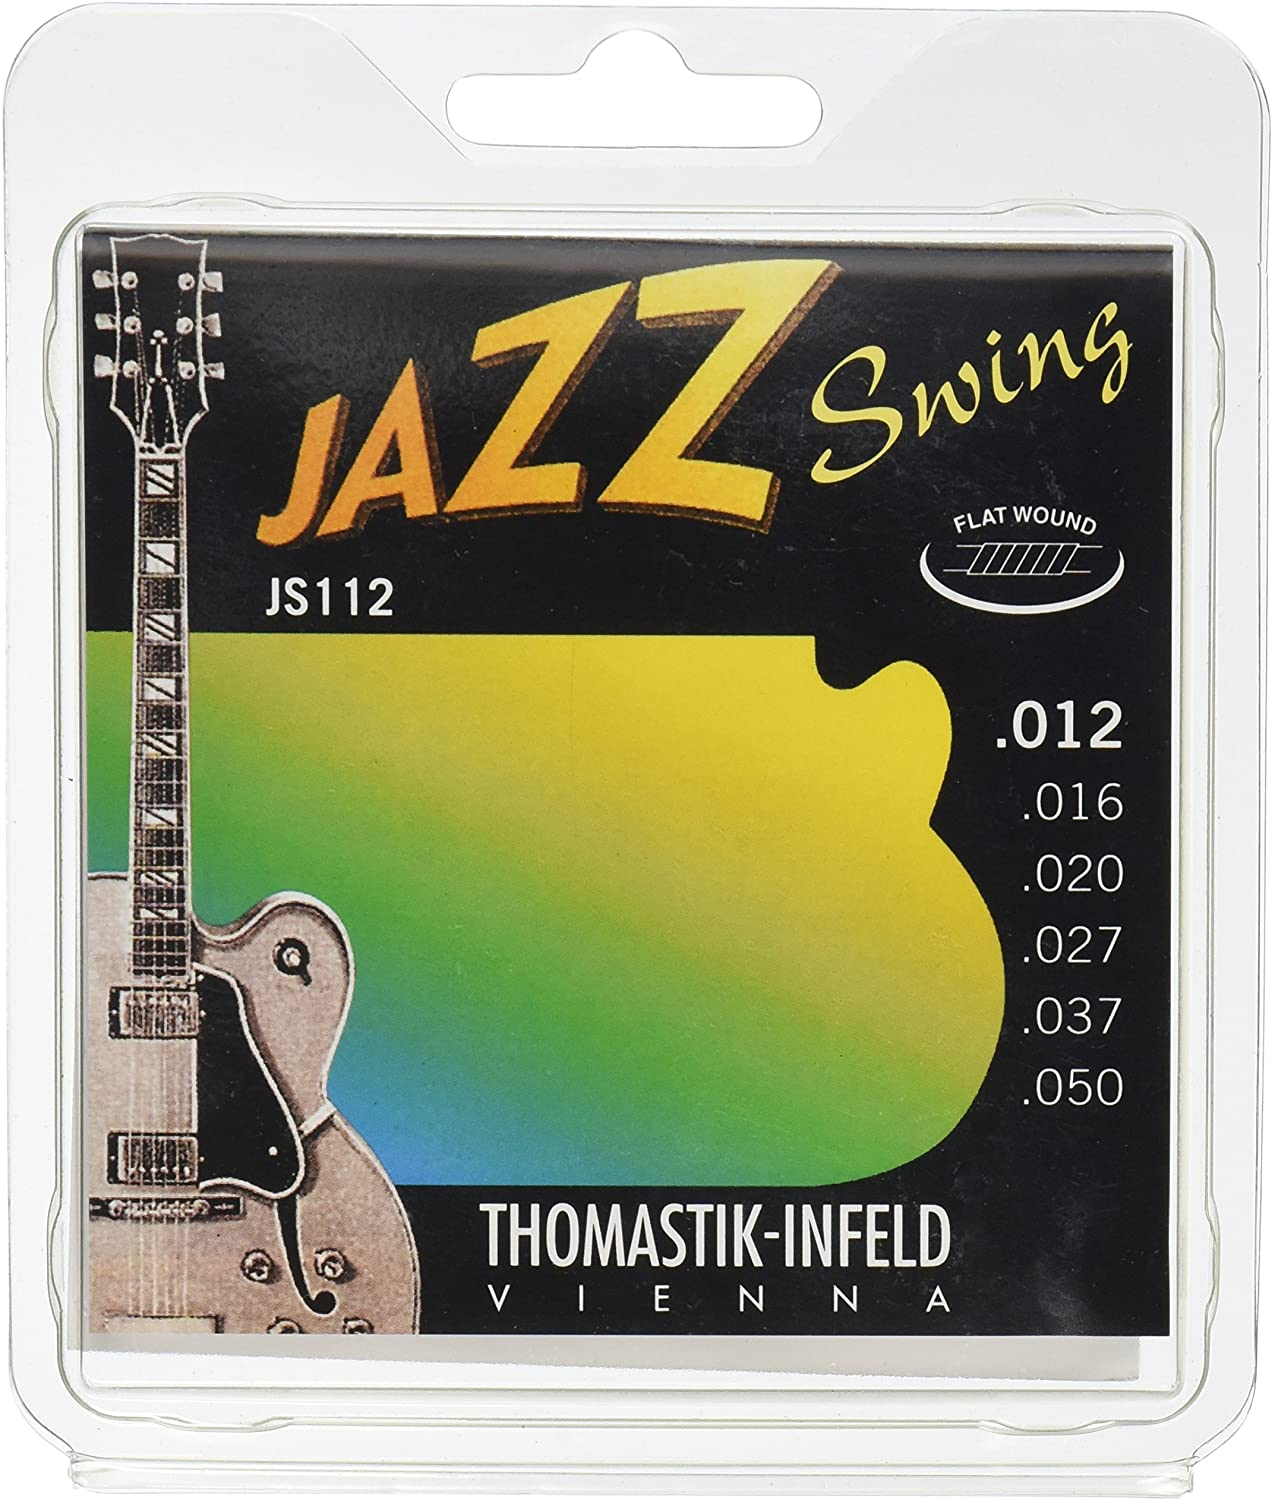 Thomastik Cuerdas para Guitarra Eléctrica Jazz Swing Series niquel Flat Wound juego JS112 Medium Light .012-.050w